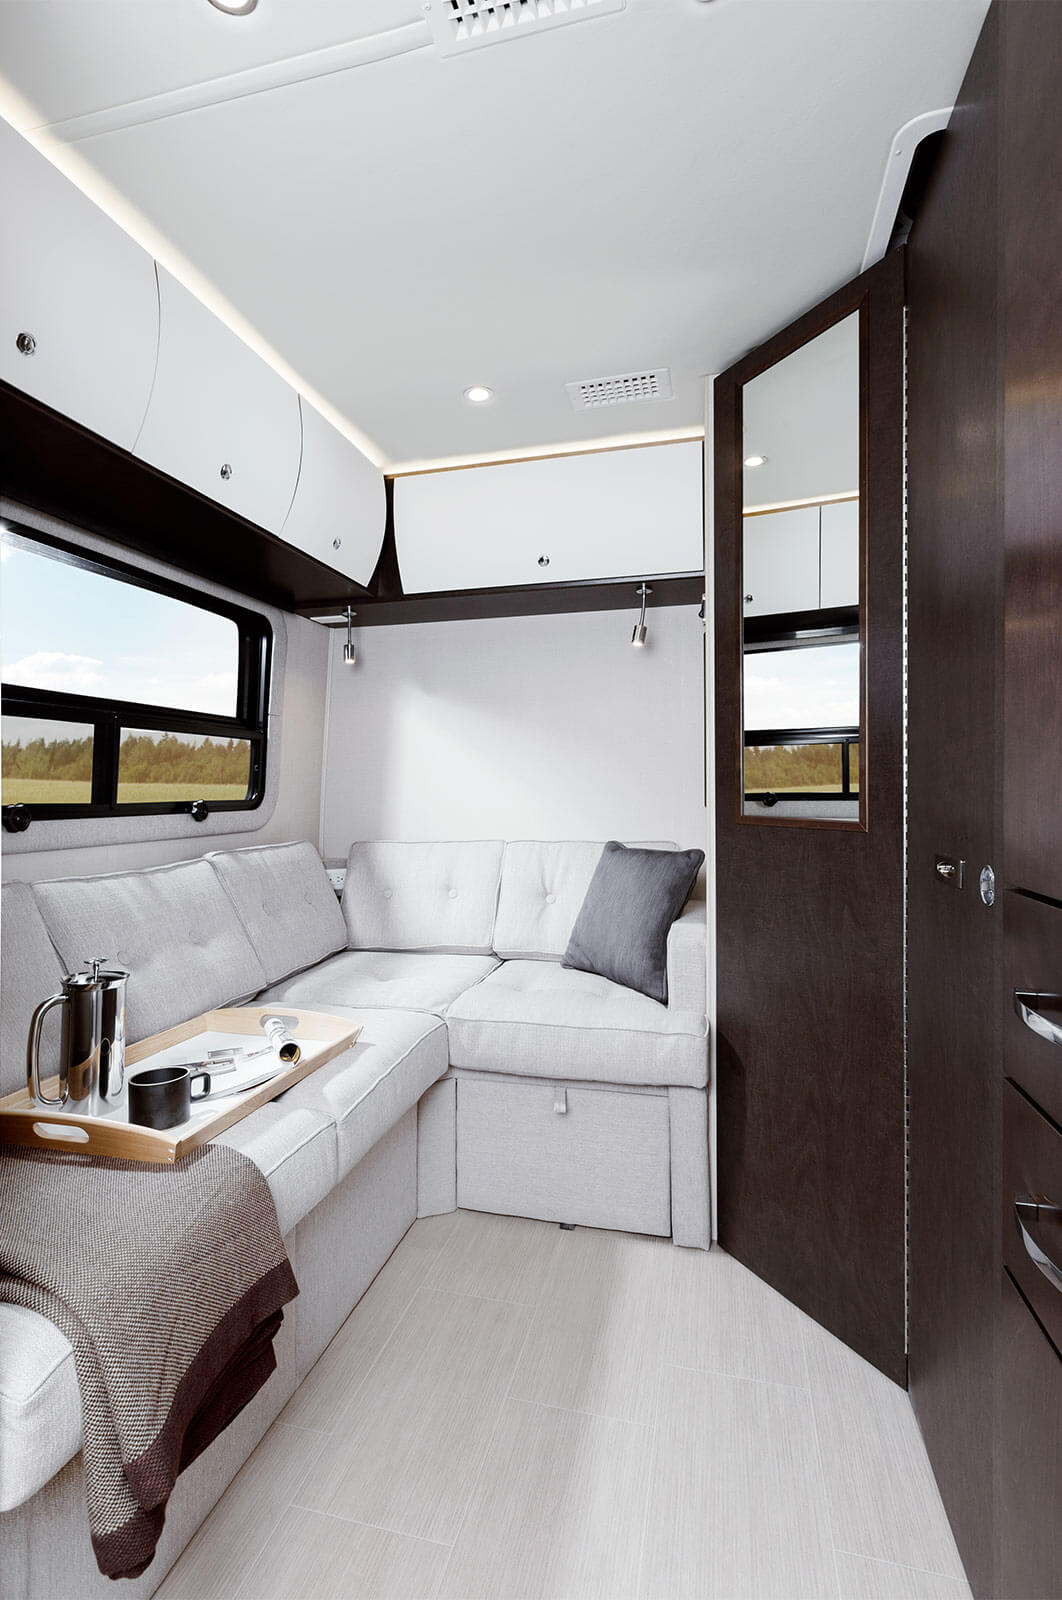 Leisure Travel Vans Transforms The Open Road With The All